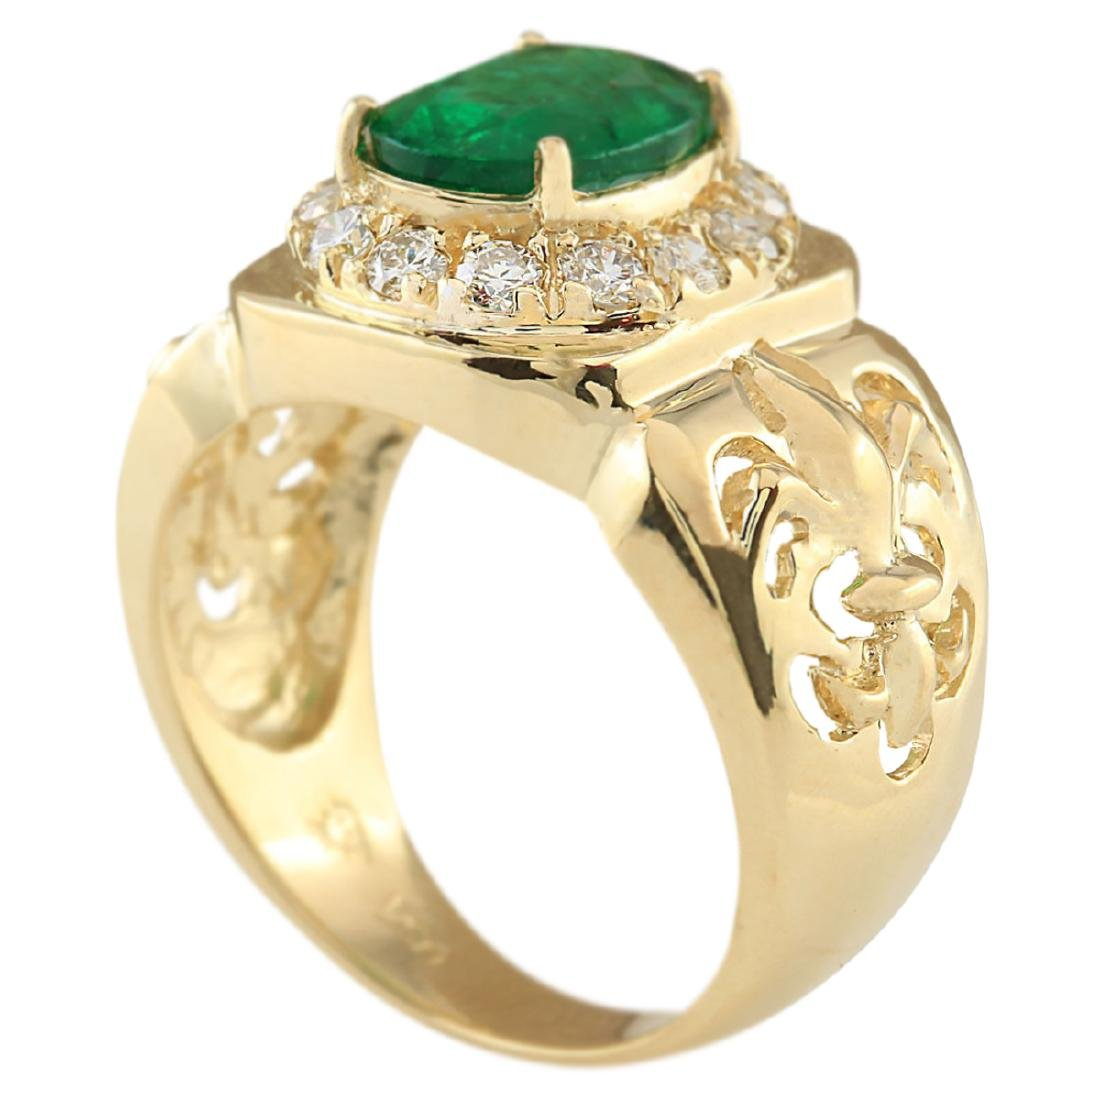 3.02 CTW Natural Emerald And Diamond Ring In 18K Yellow - 3